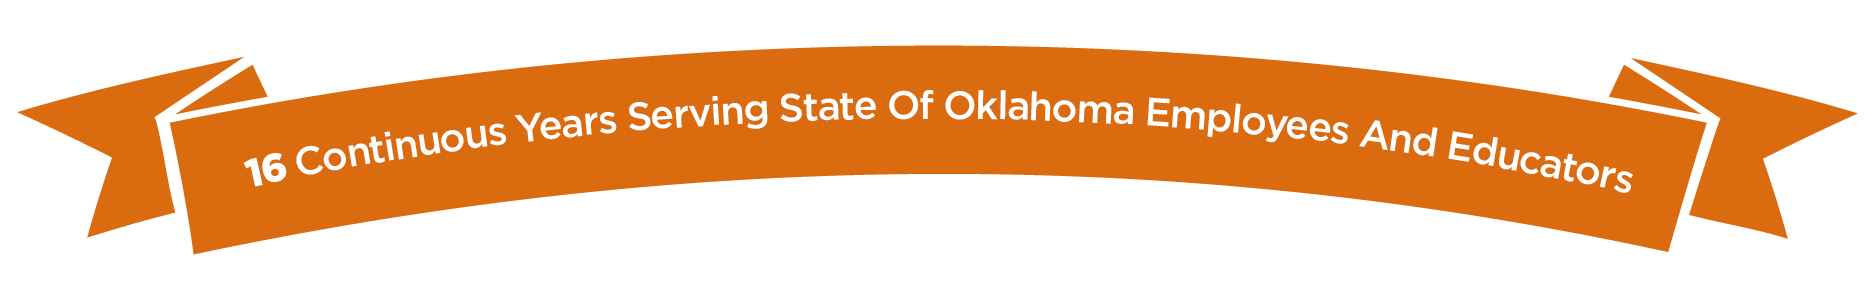 16 Continuous Years Serving State of Oklahoma Employees and Educators